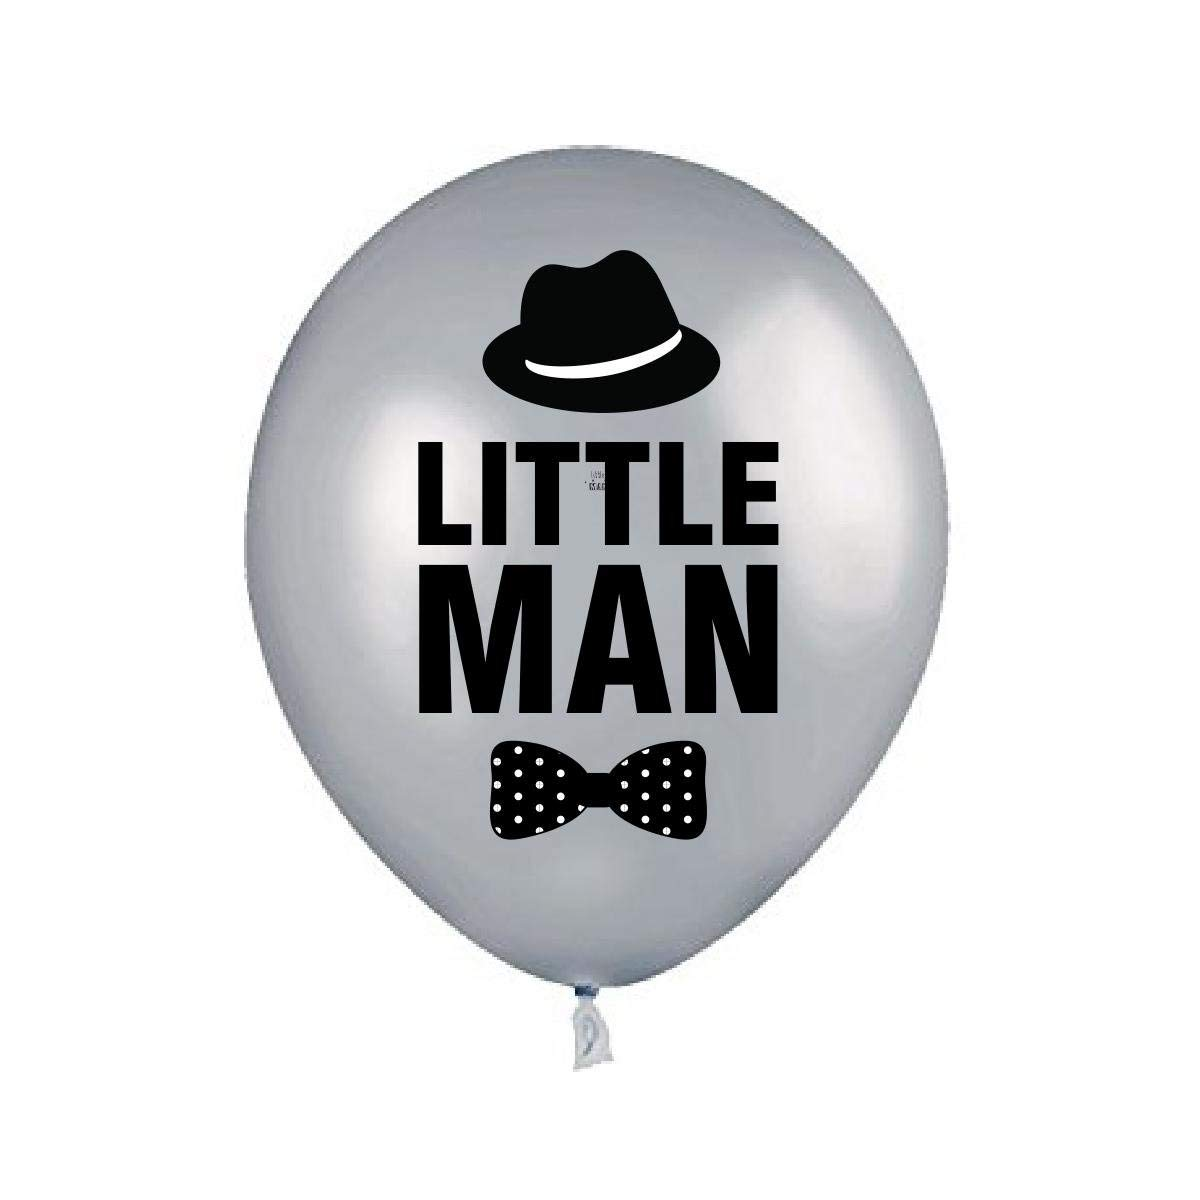 LITTLE MAN MUSTACHE 1st BIRTHDAY Balloons Decorations Supplies17 Pieces